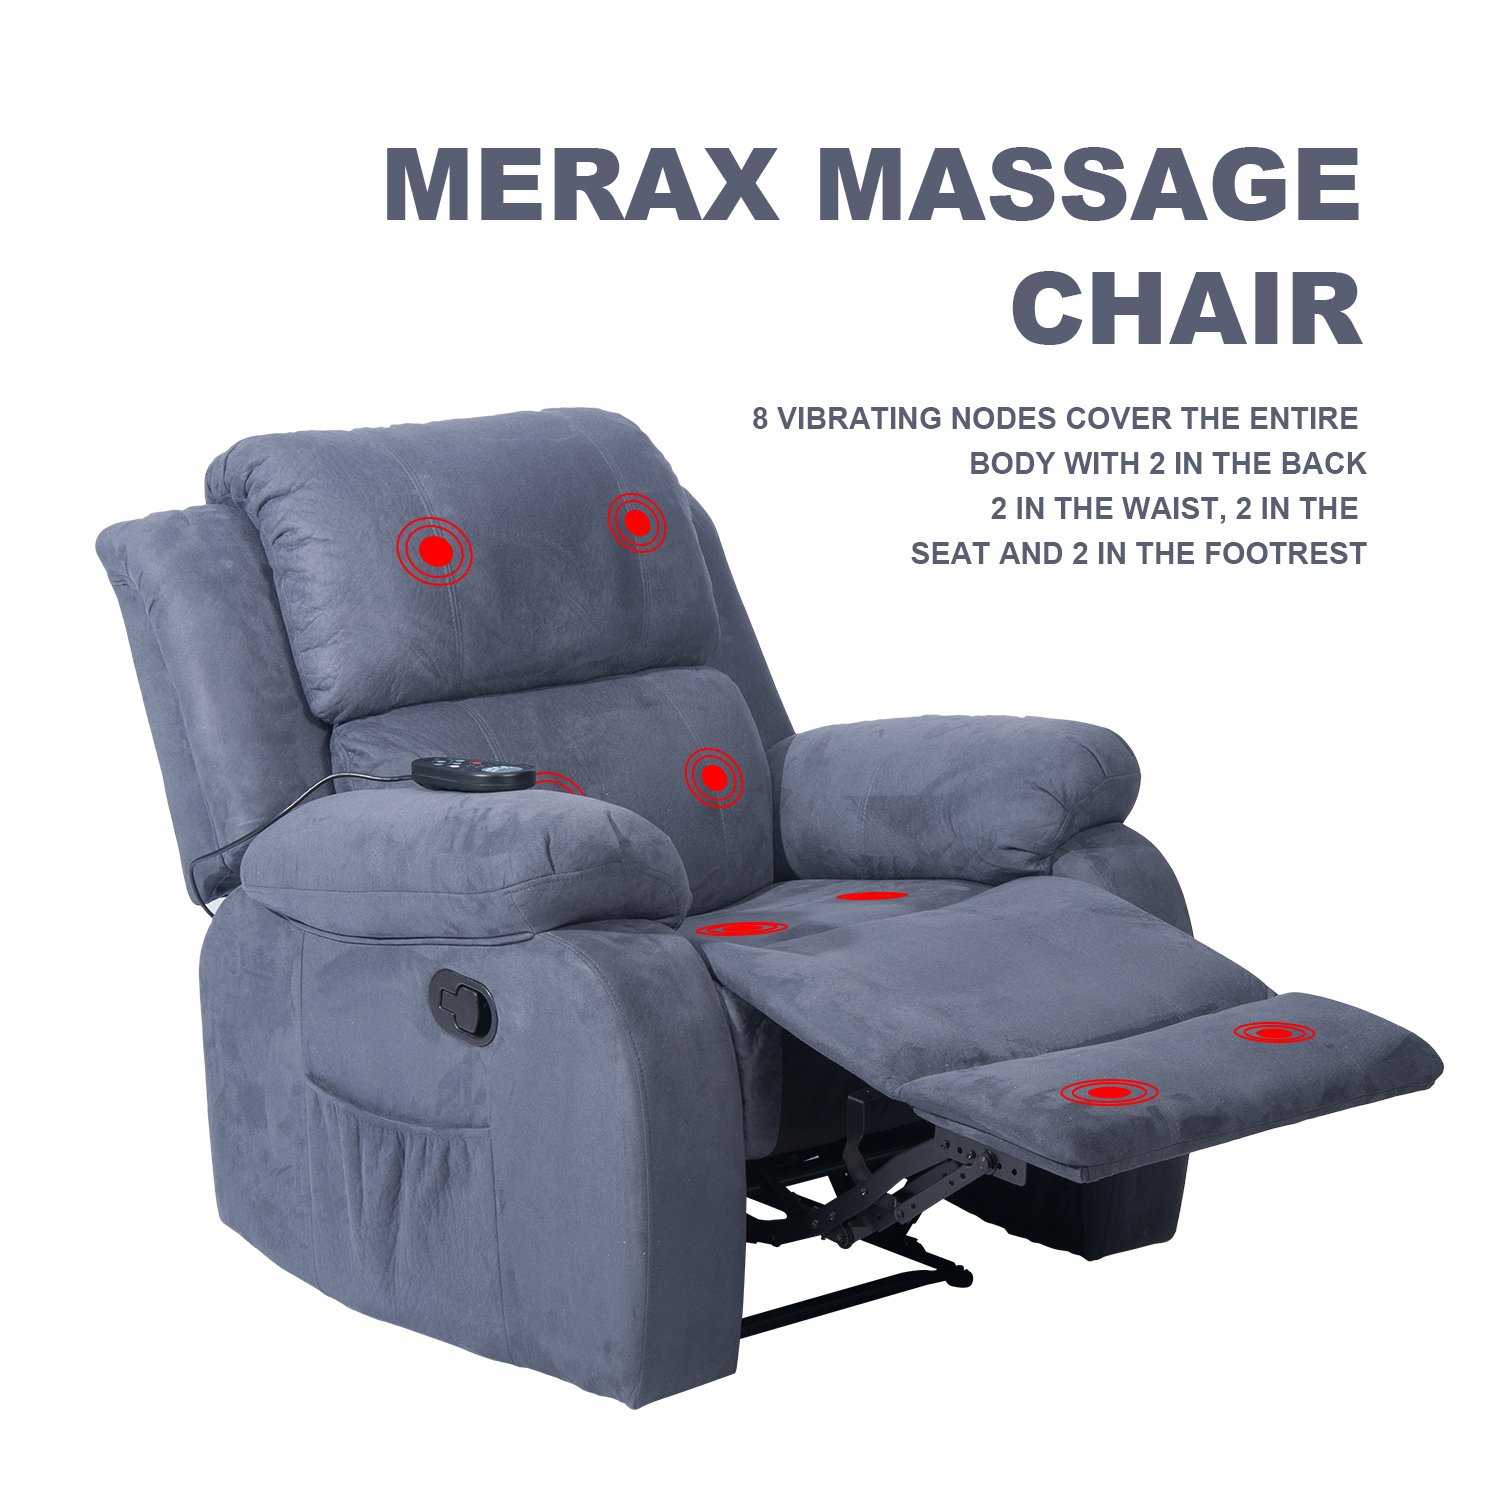 Merax Suede Heated Massage Recliner Sofa Chair Ergonomic Lounge with 8 Vibration Motors, Grey by Merax (Image #3)